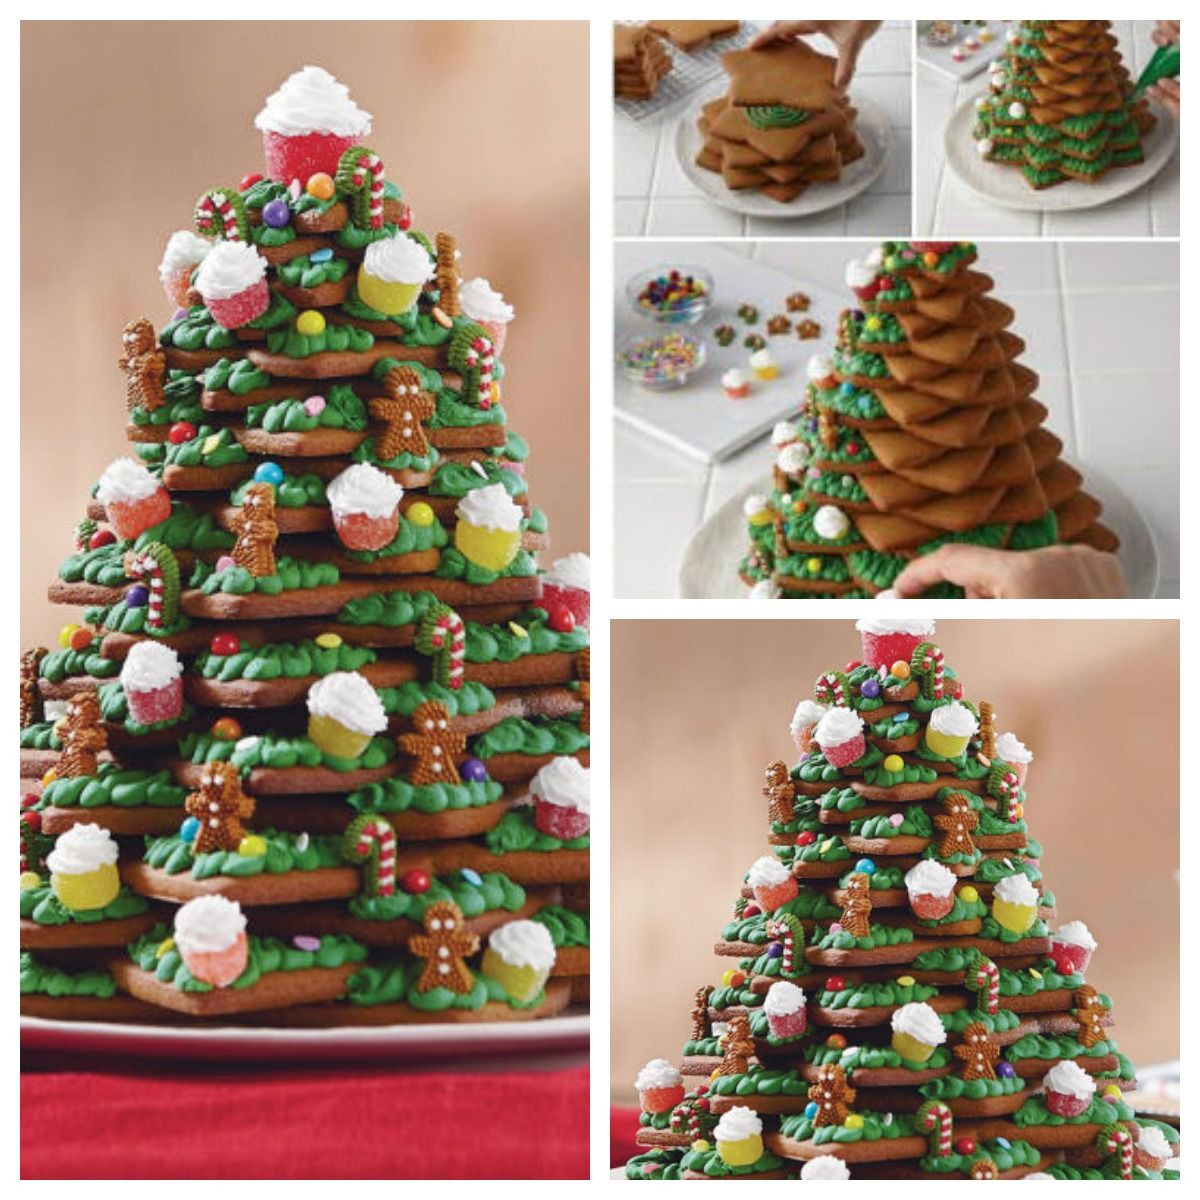 Best ideas about Pinterest Christmas DIY . Save or Pin DIY Christmas Tree Cookies s and Now.